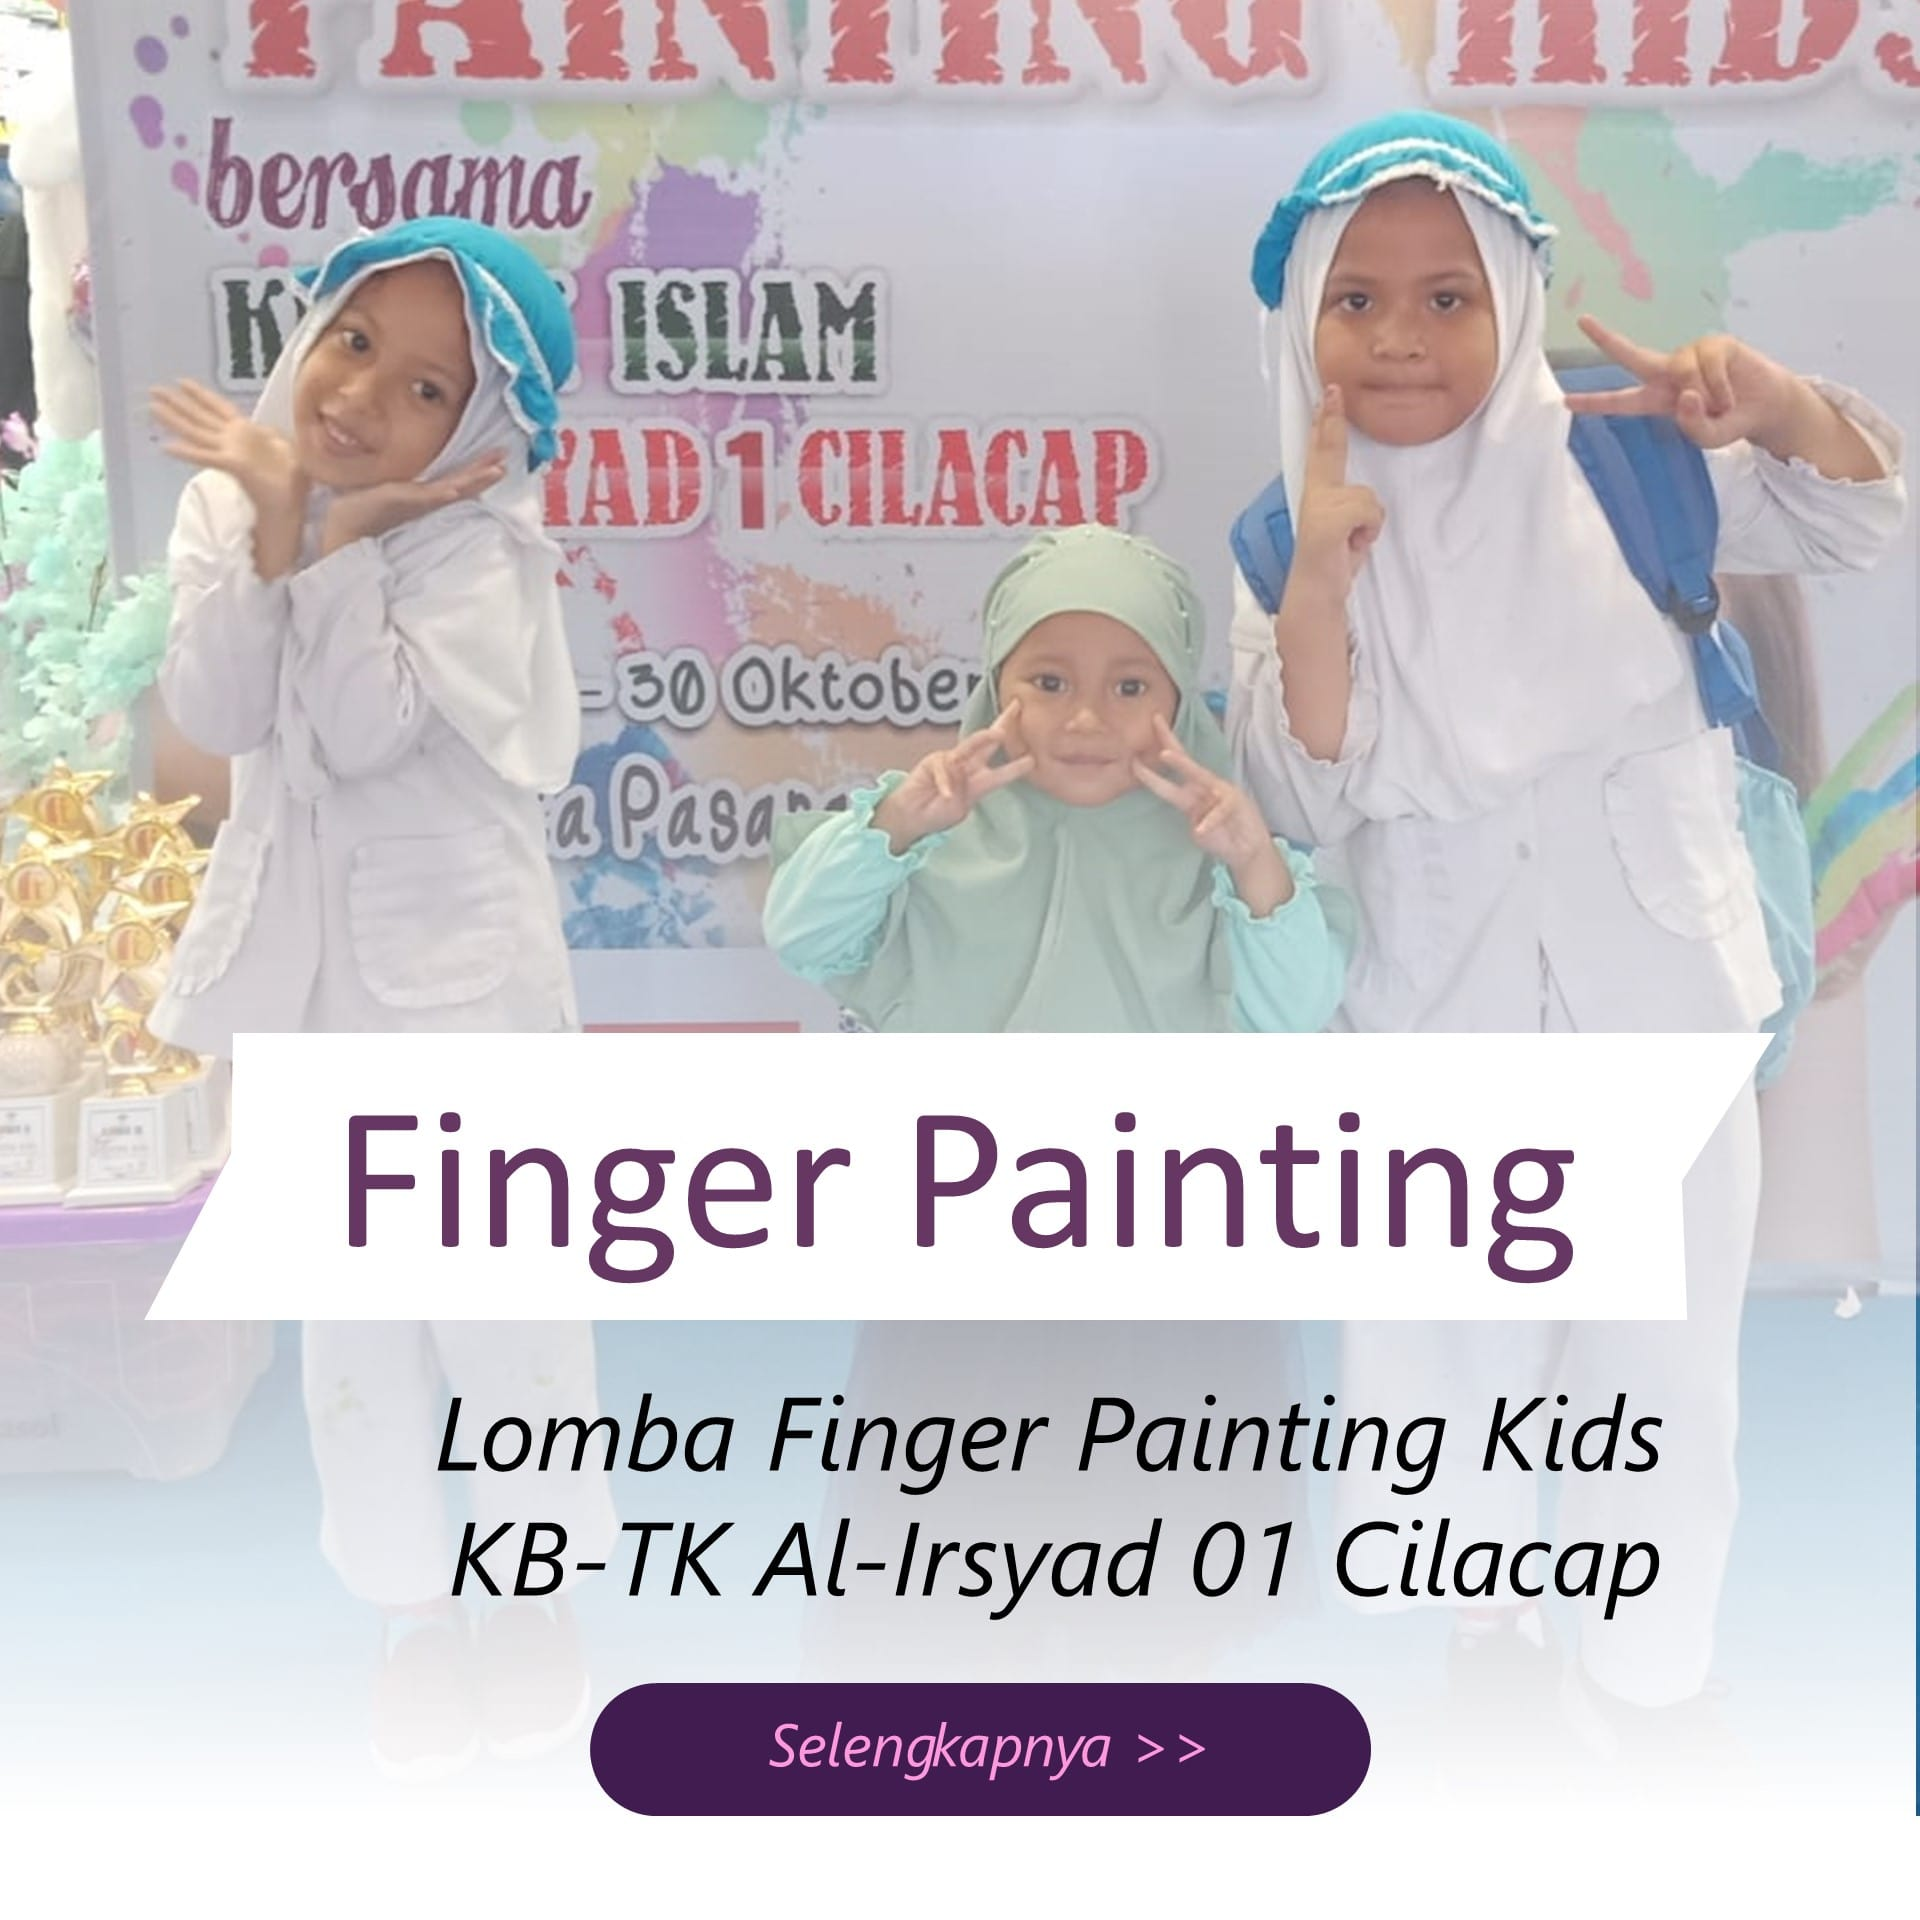 Finger Painting Kids